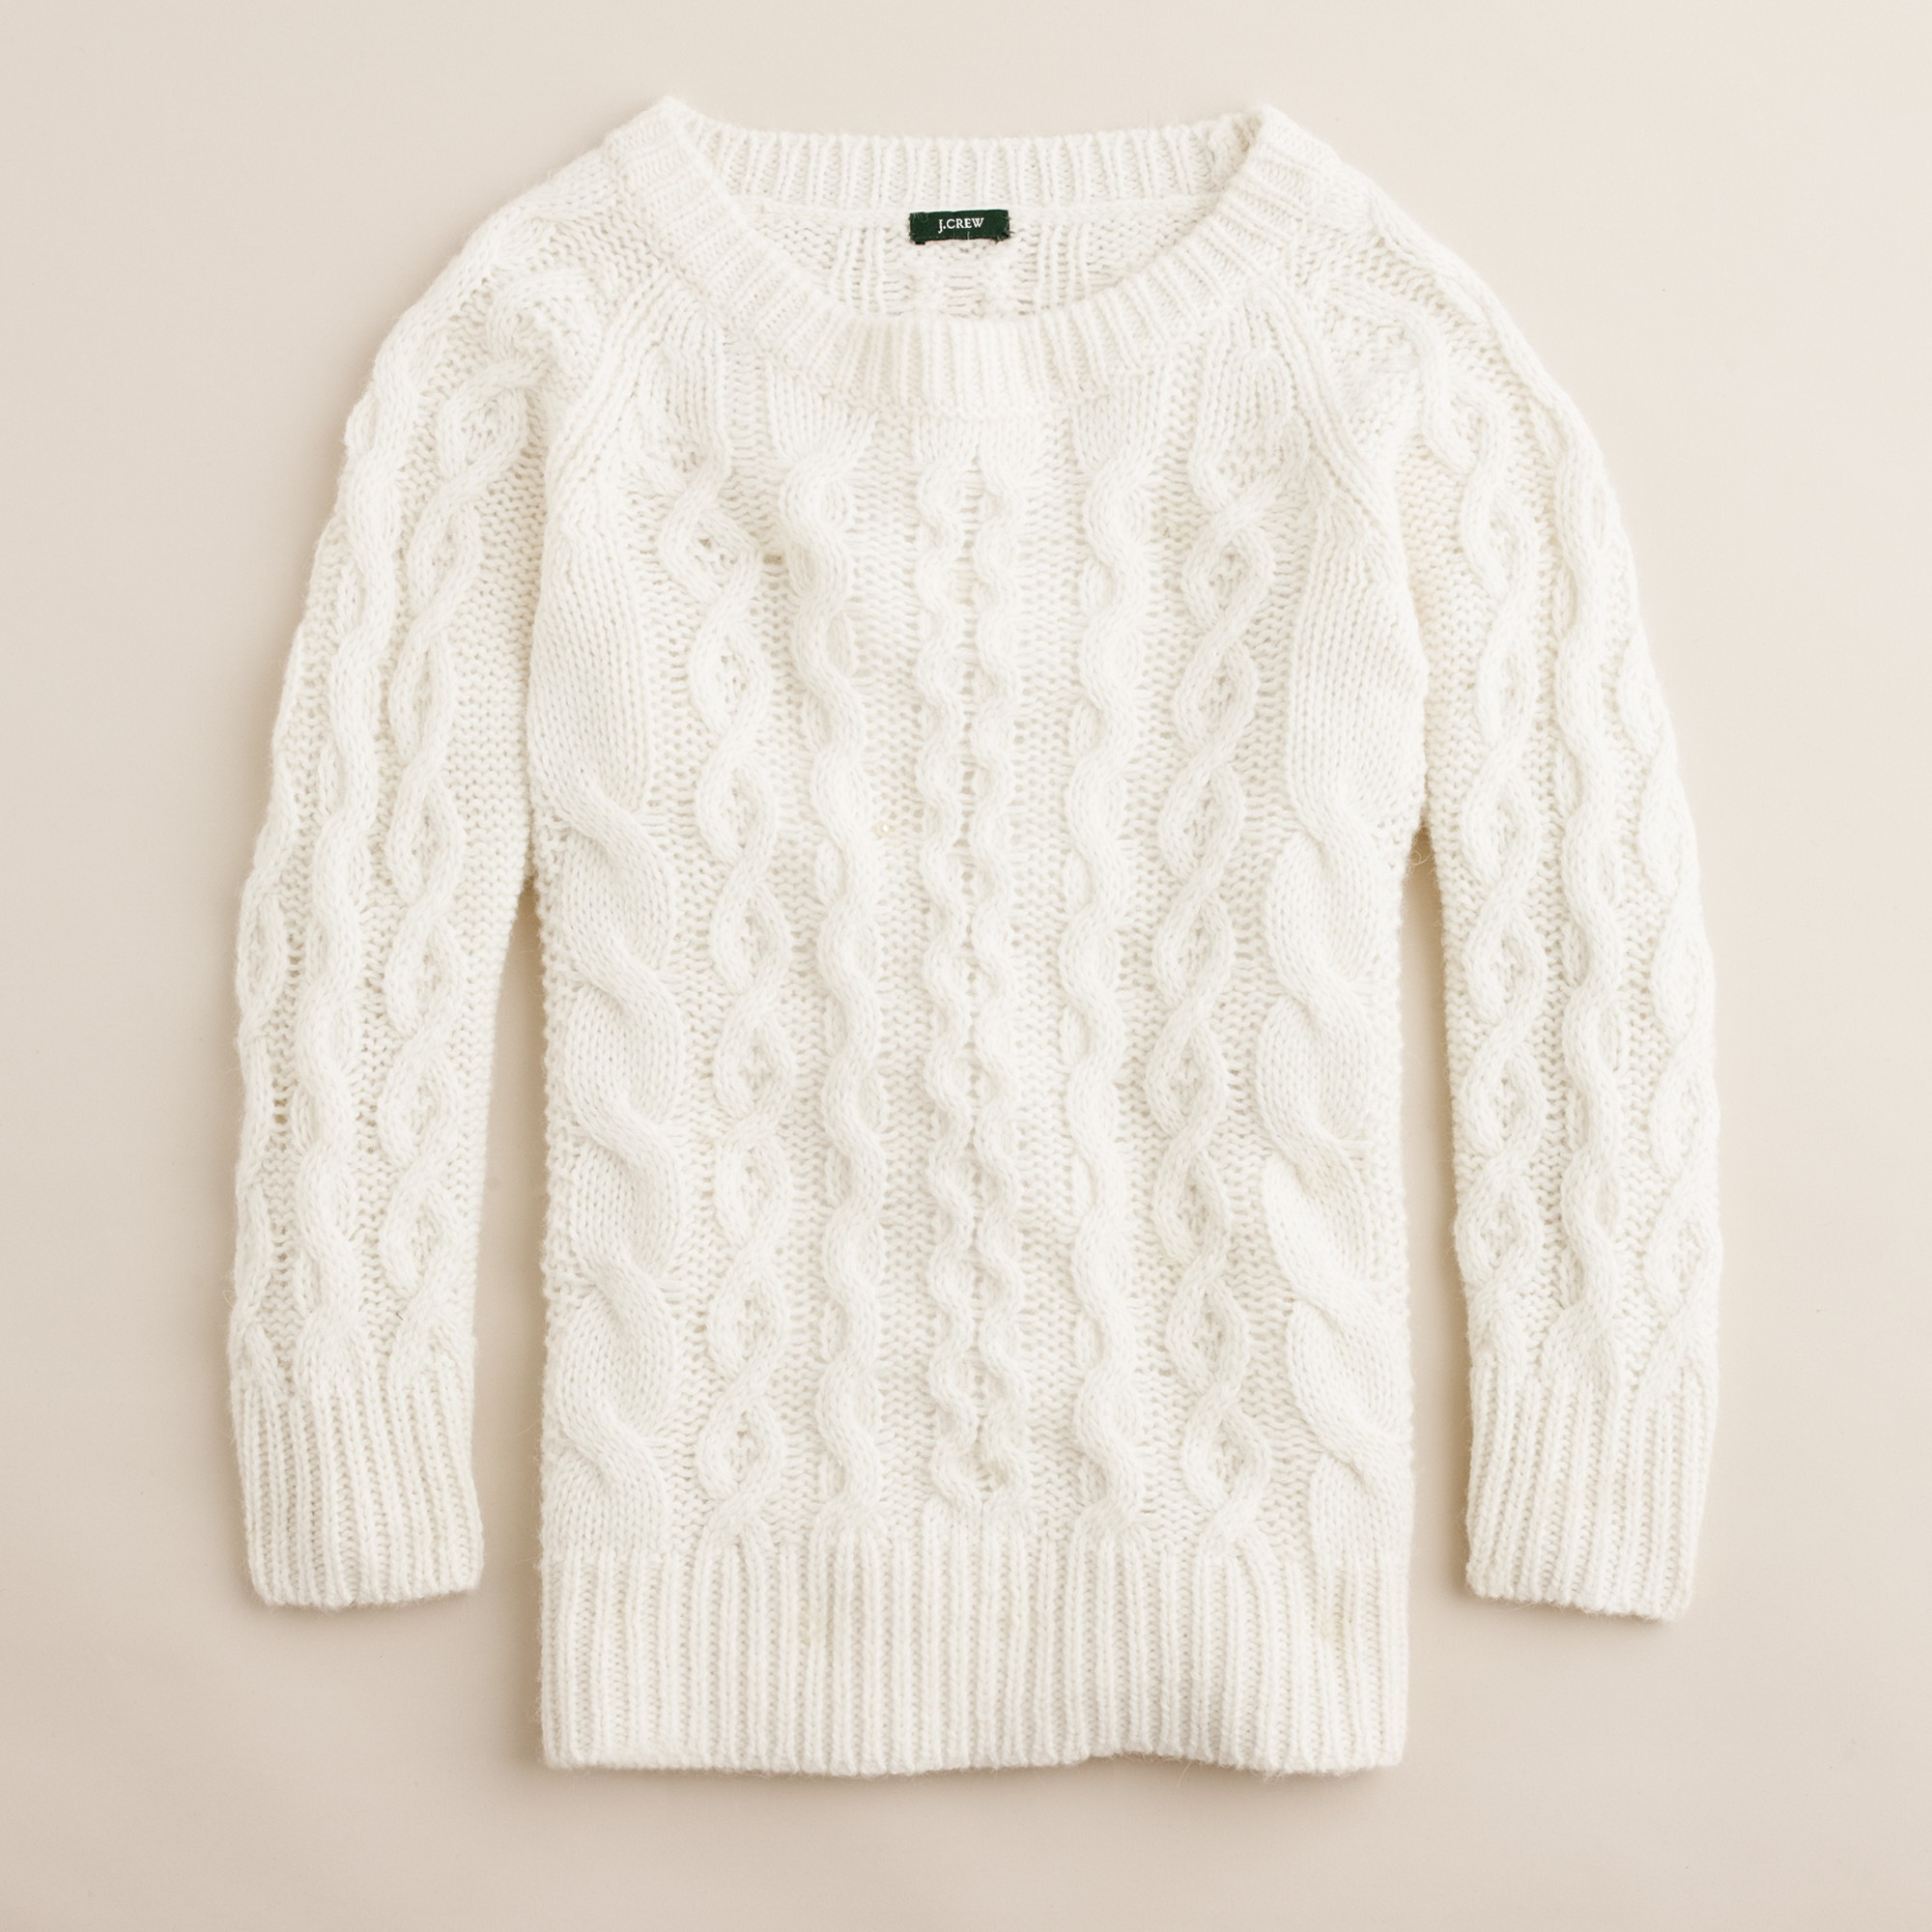 Jcrew vintage champagne fisherman sweater product 1 2198853 979906907